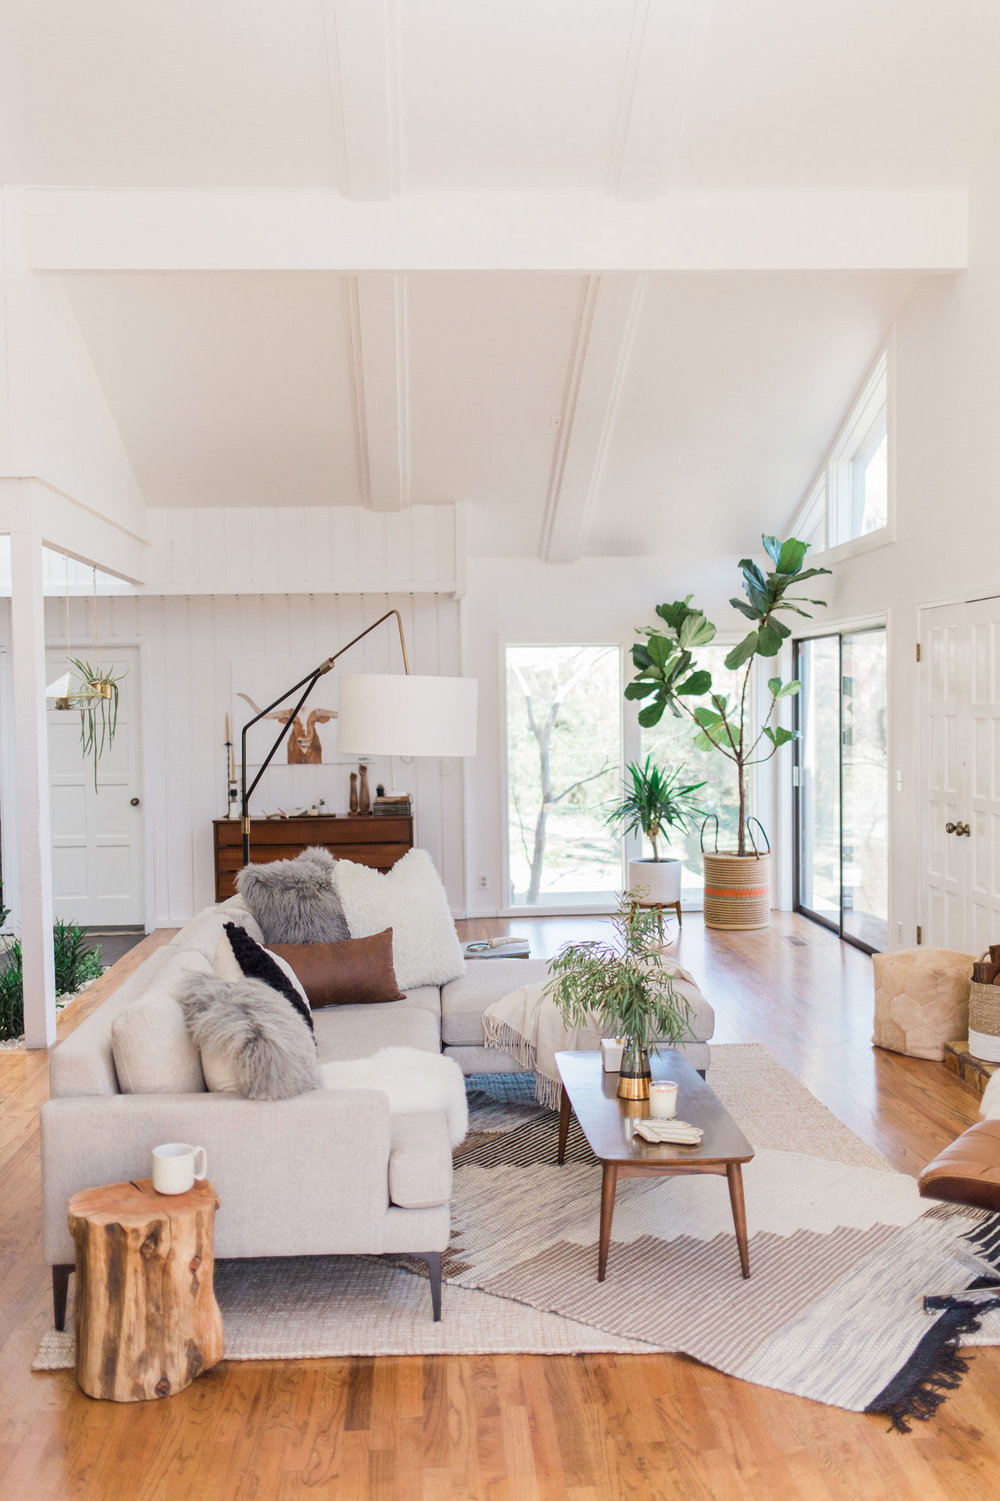 Get the look of this neutral California eclectic living room on the blog! This room does neutrals right - varying the texture and patterns, but keeping the color palette quiet overall.